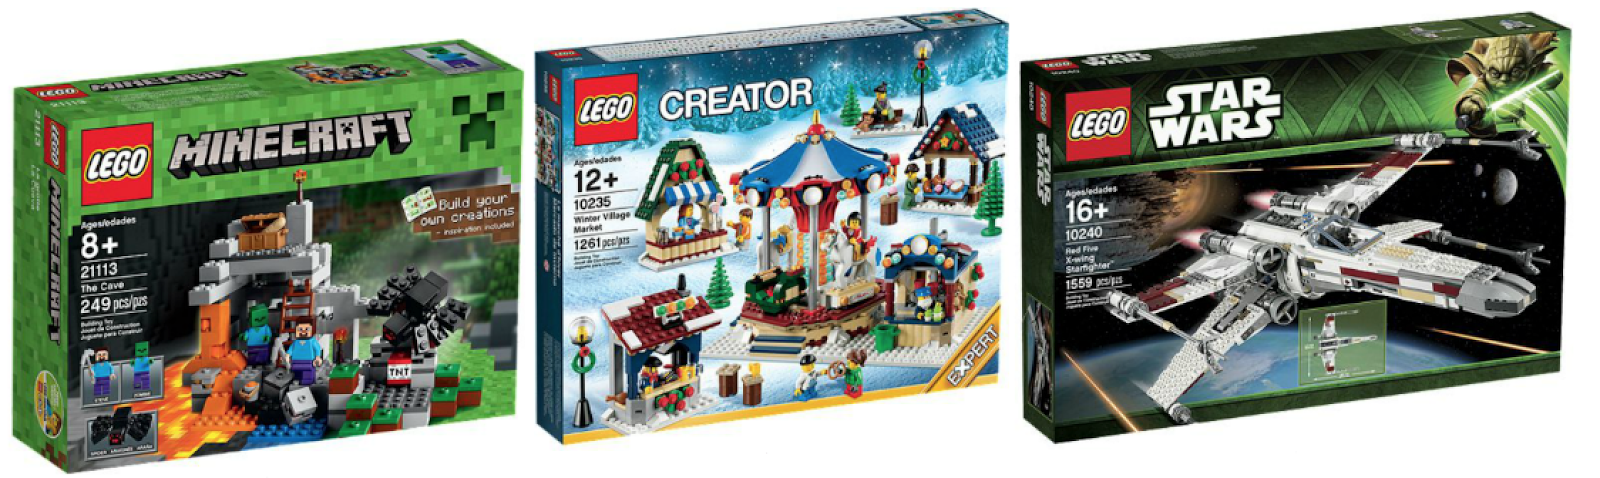 http://www.thebinderladies.com/2014/11/legoshop-free-shipping-no-minimum-99.html